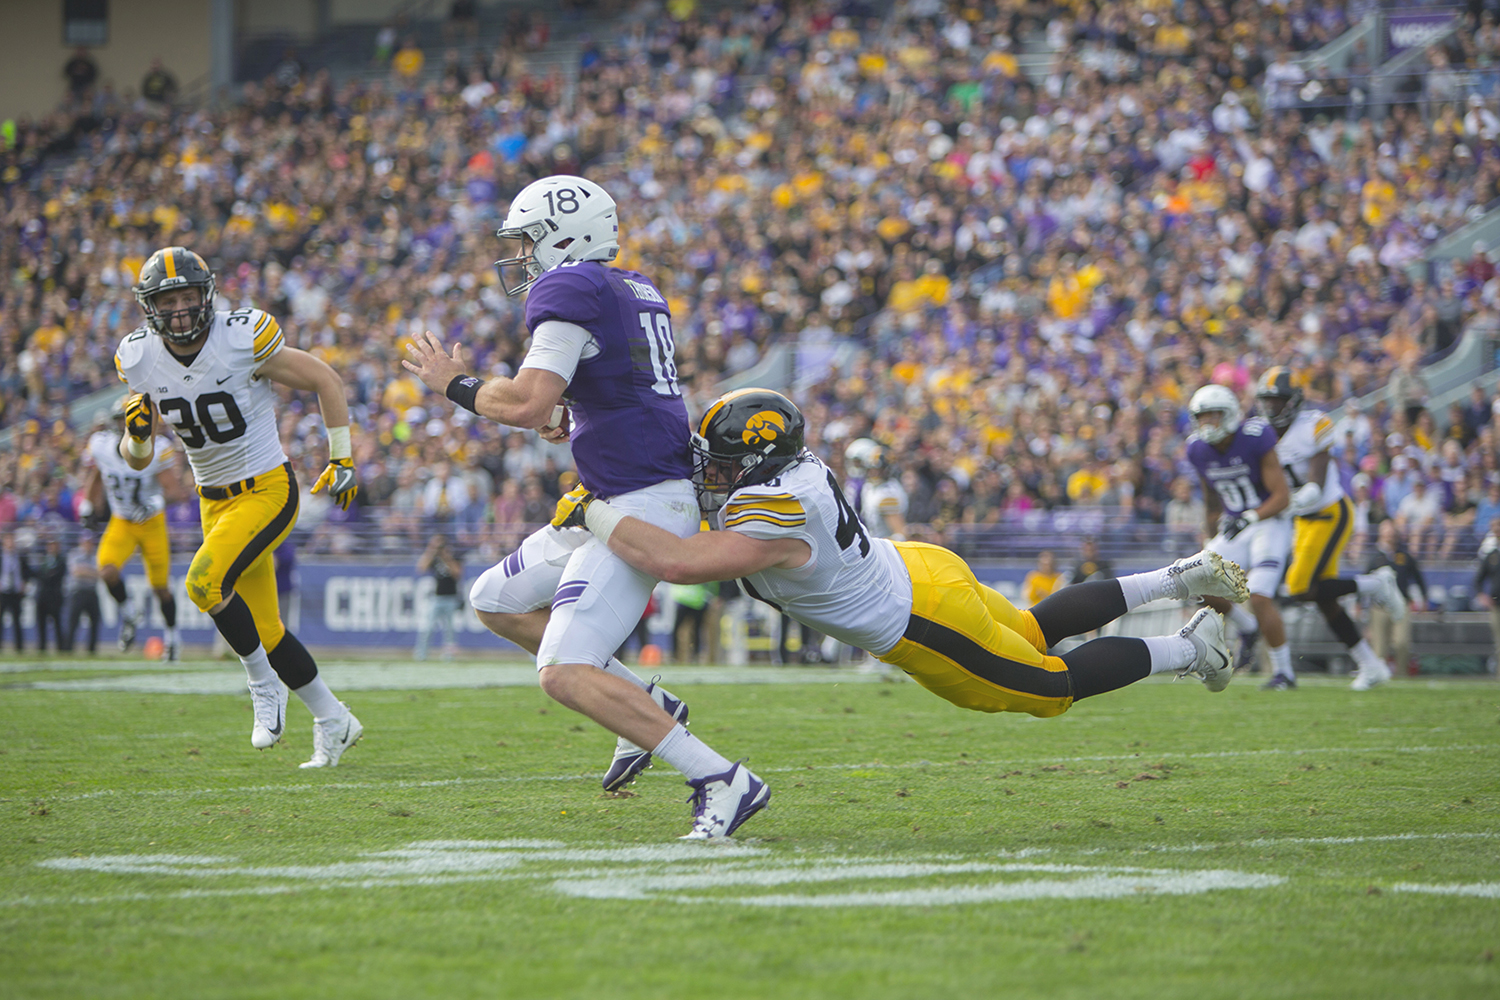 Iowa defensive end Parker Hesse tackles Northwestern quarterback Clayton Thorson during the game between Iowa and Northwestern at Ryan Field in Evanston on Saturday, Oct. 21, 2017.